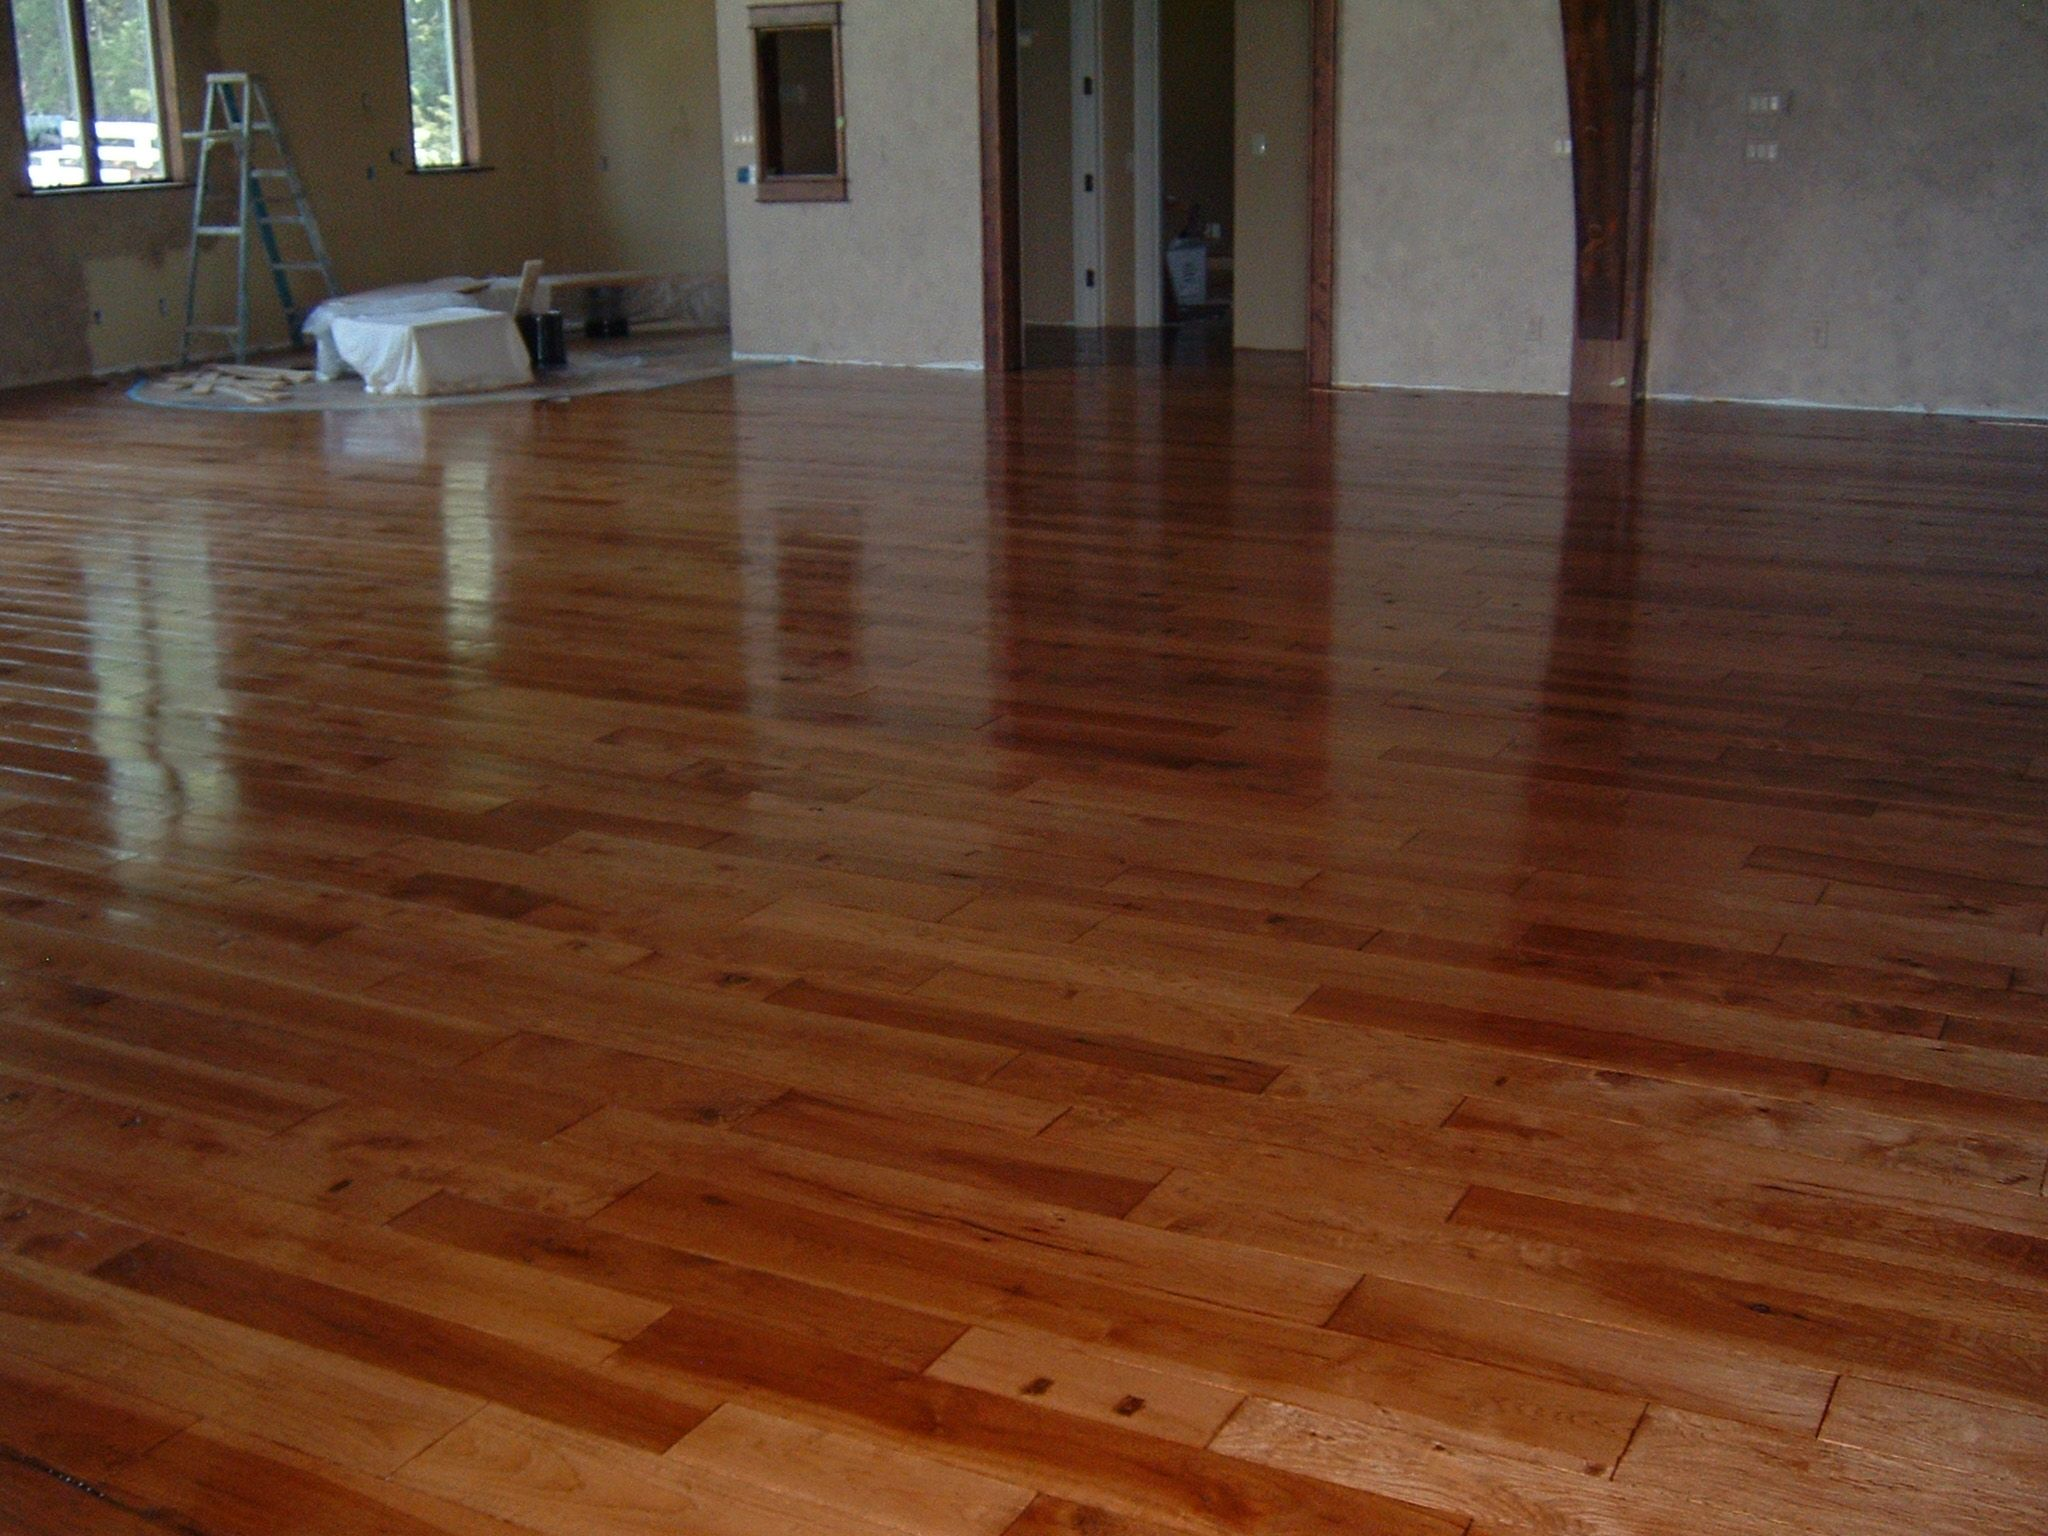 Epoxy Over Old Wood Floor